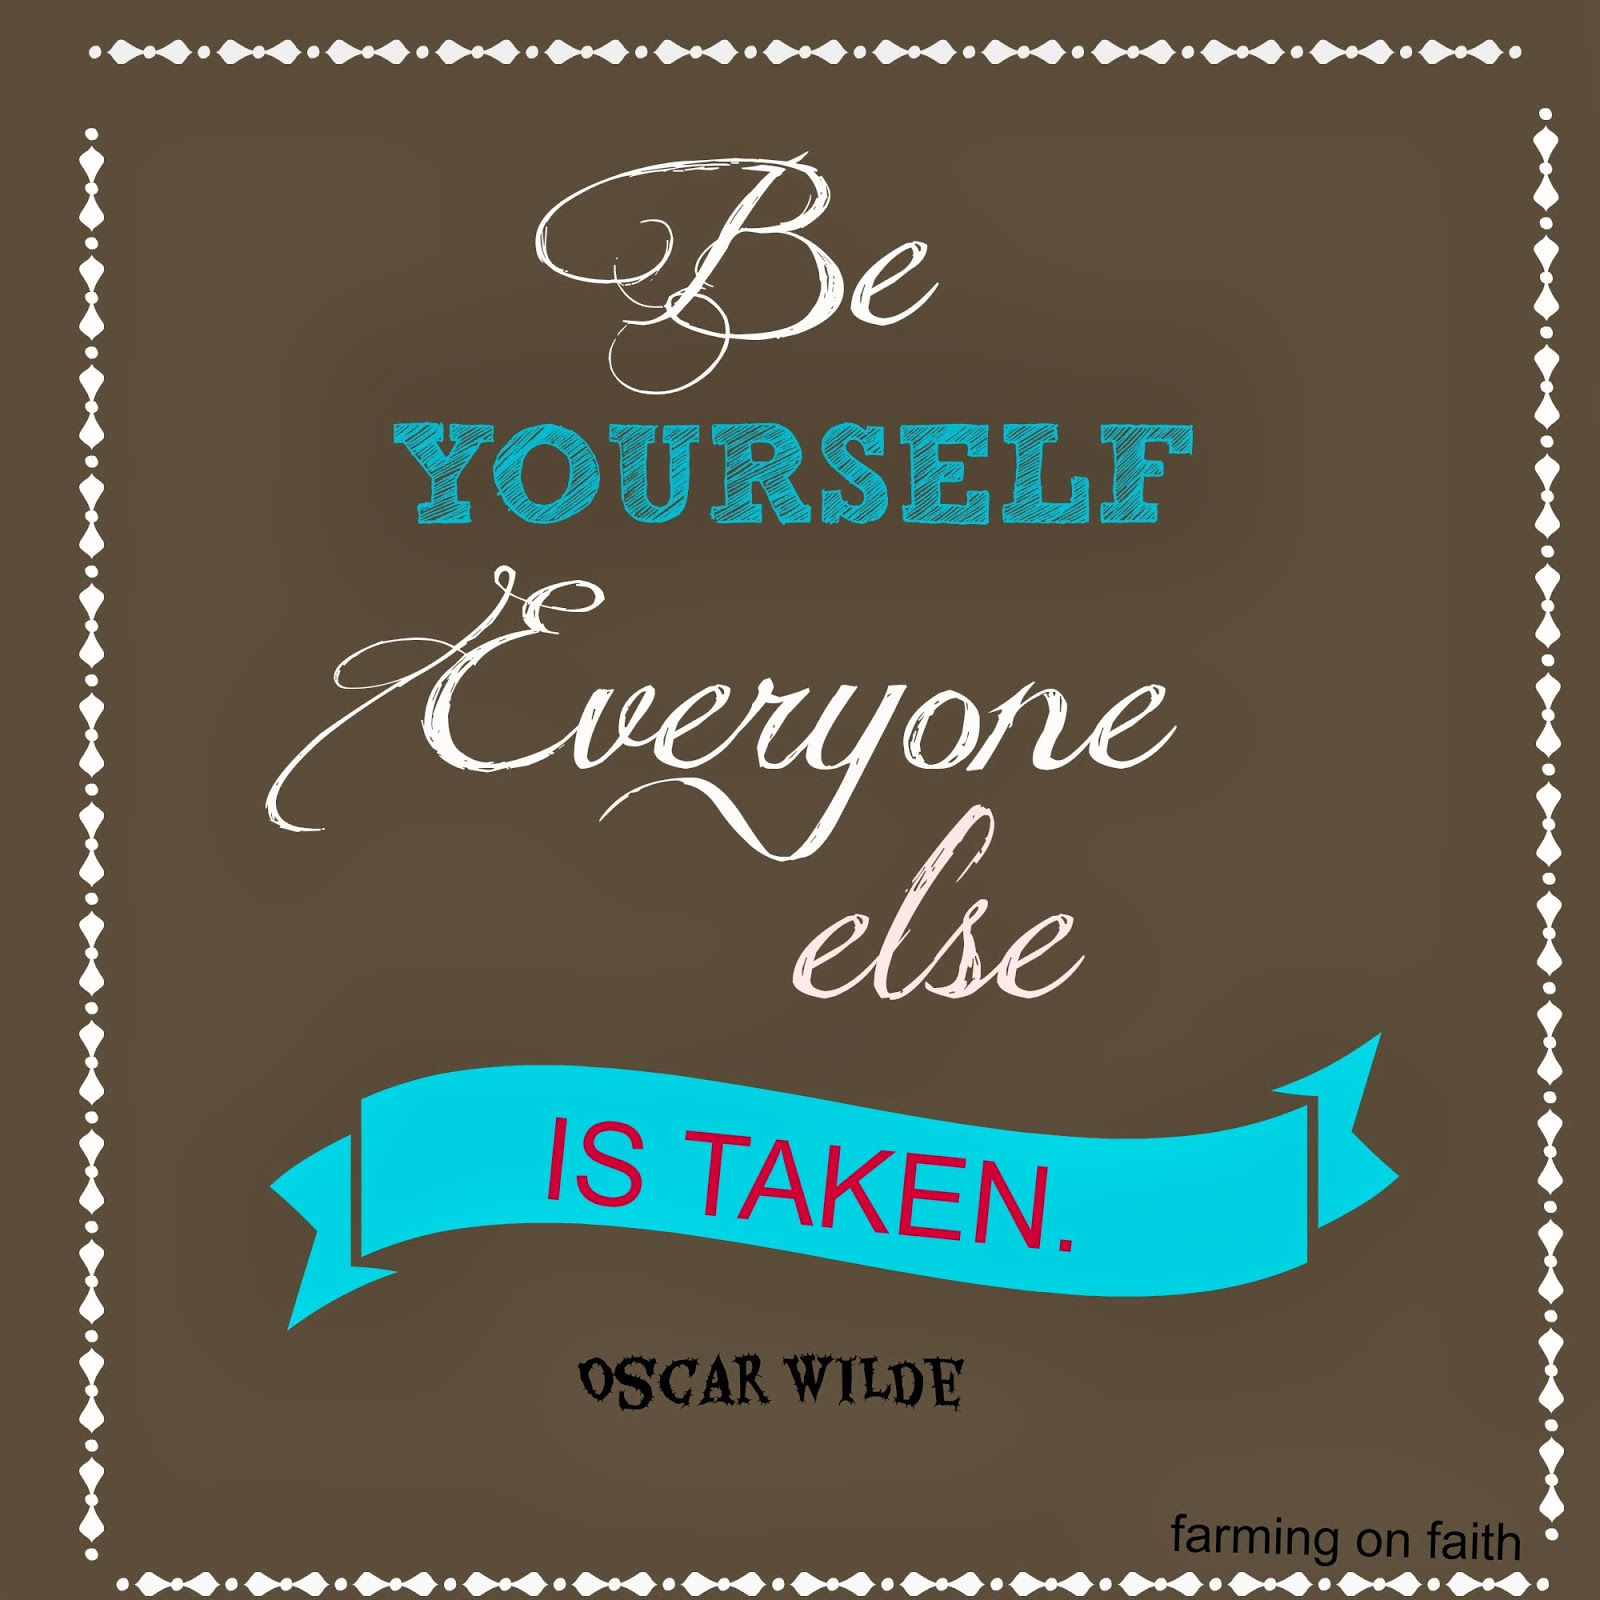 Just Be Yourself Everyone Else Is Taken Just be yourself everyone elseJust Be Yourself Everyone Else Is Taken